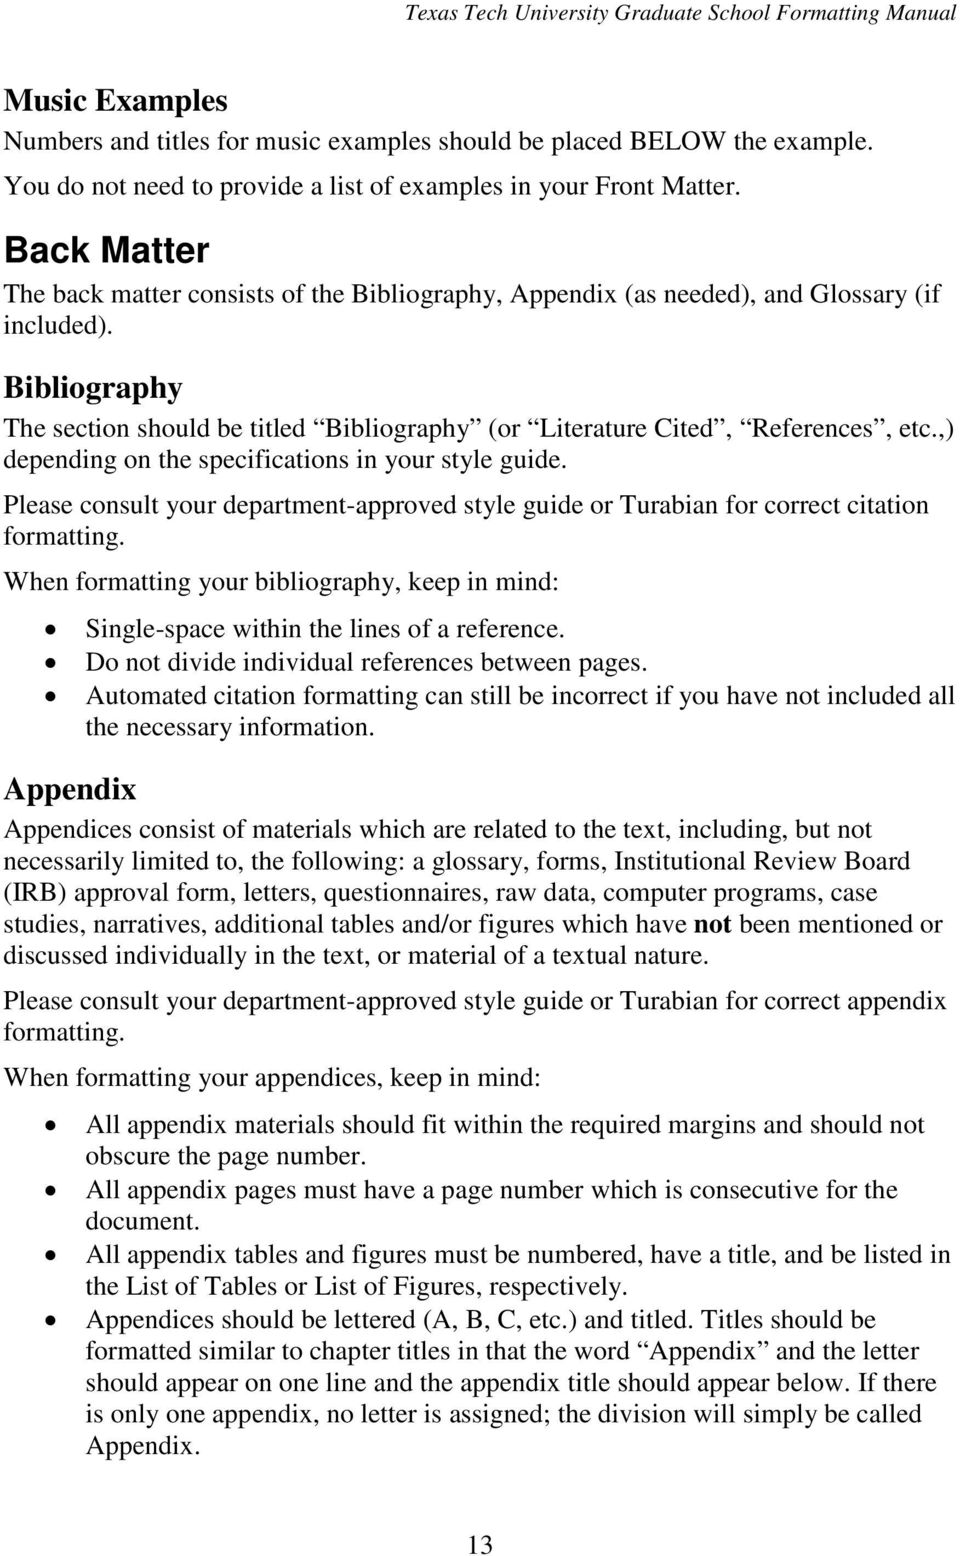 Help writing phd proposal steps